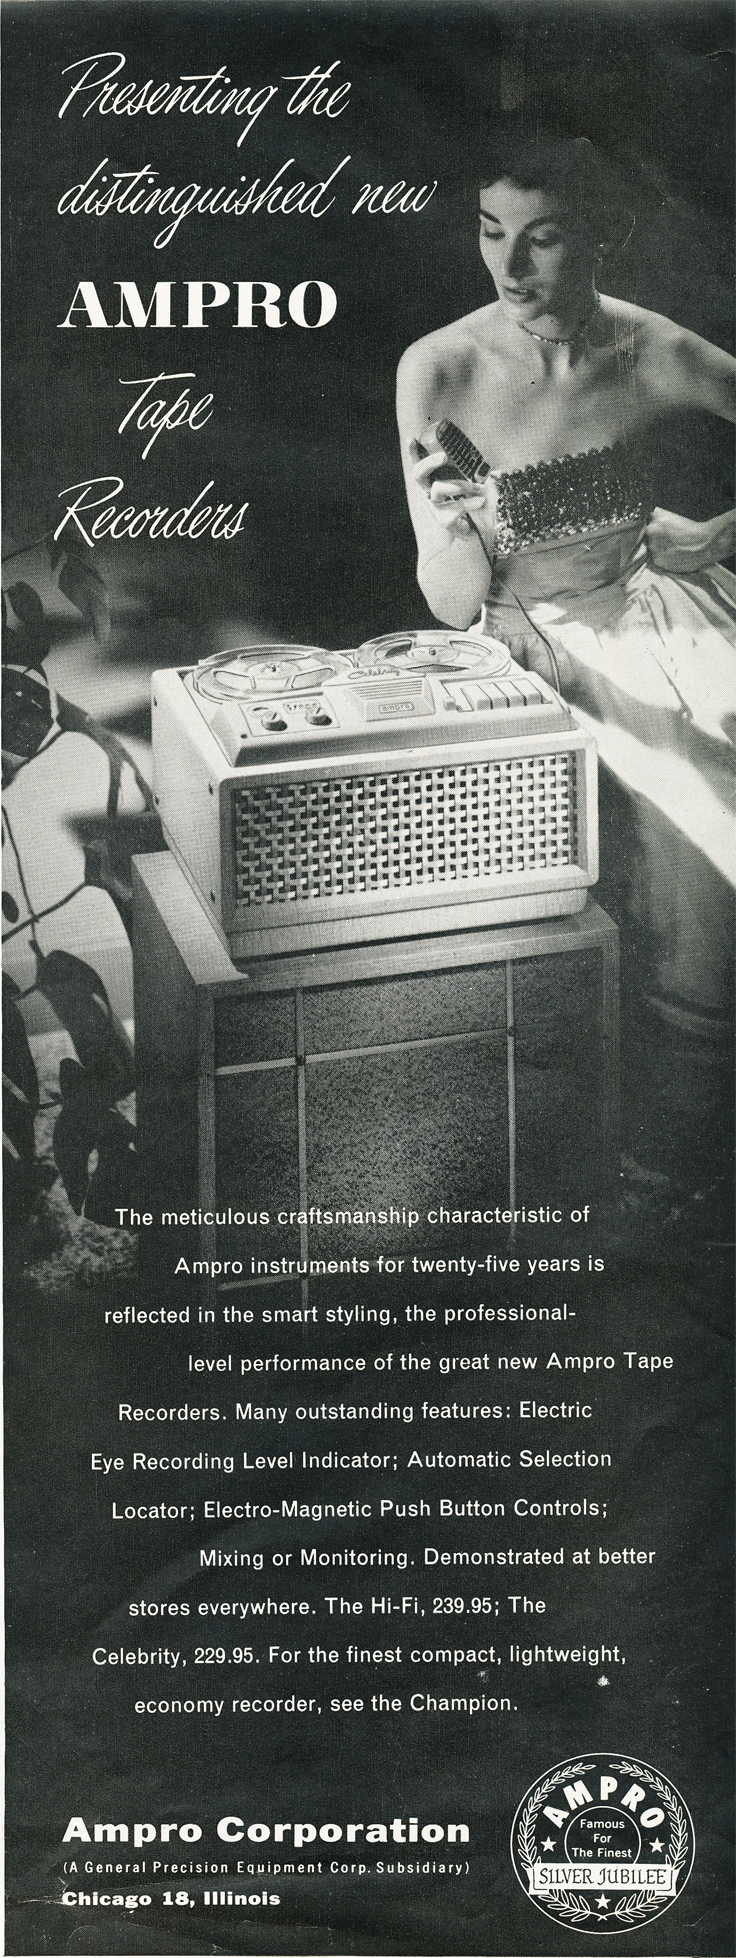 1957 Ampro tape recorder ad in the Reel2ReelTexas.com vintage recording collection